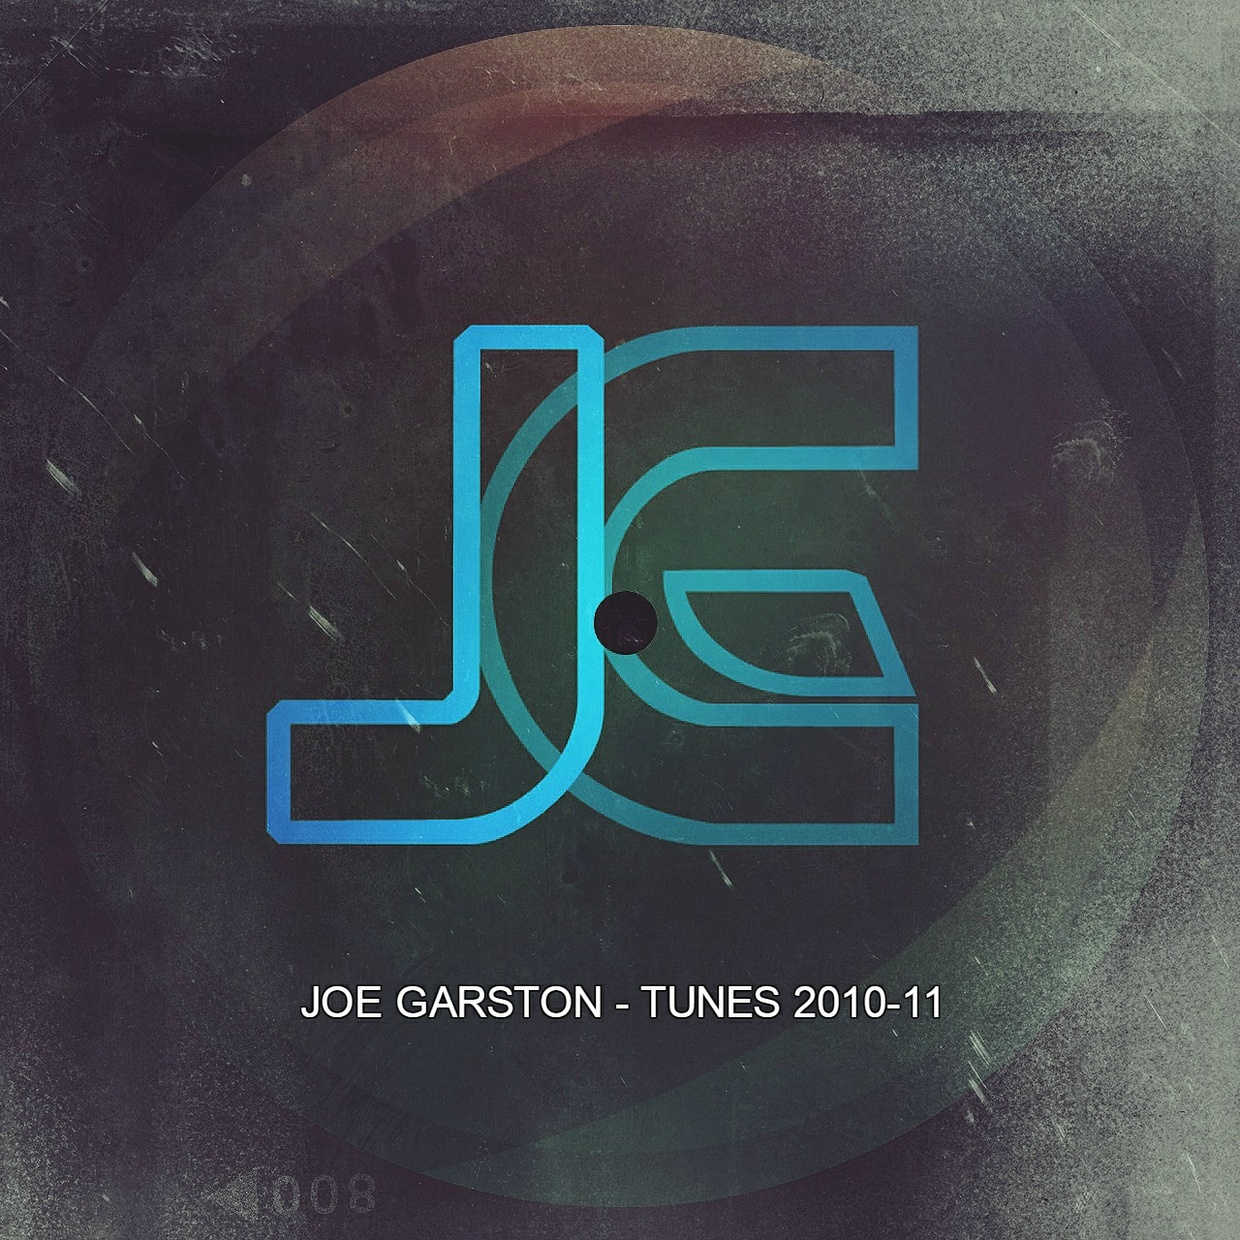 Joe Garston - TUNES 2010-11 (Album)